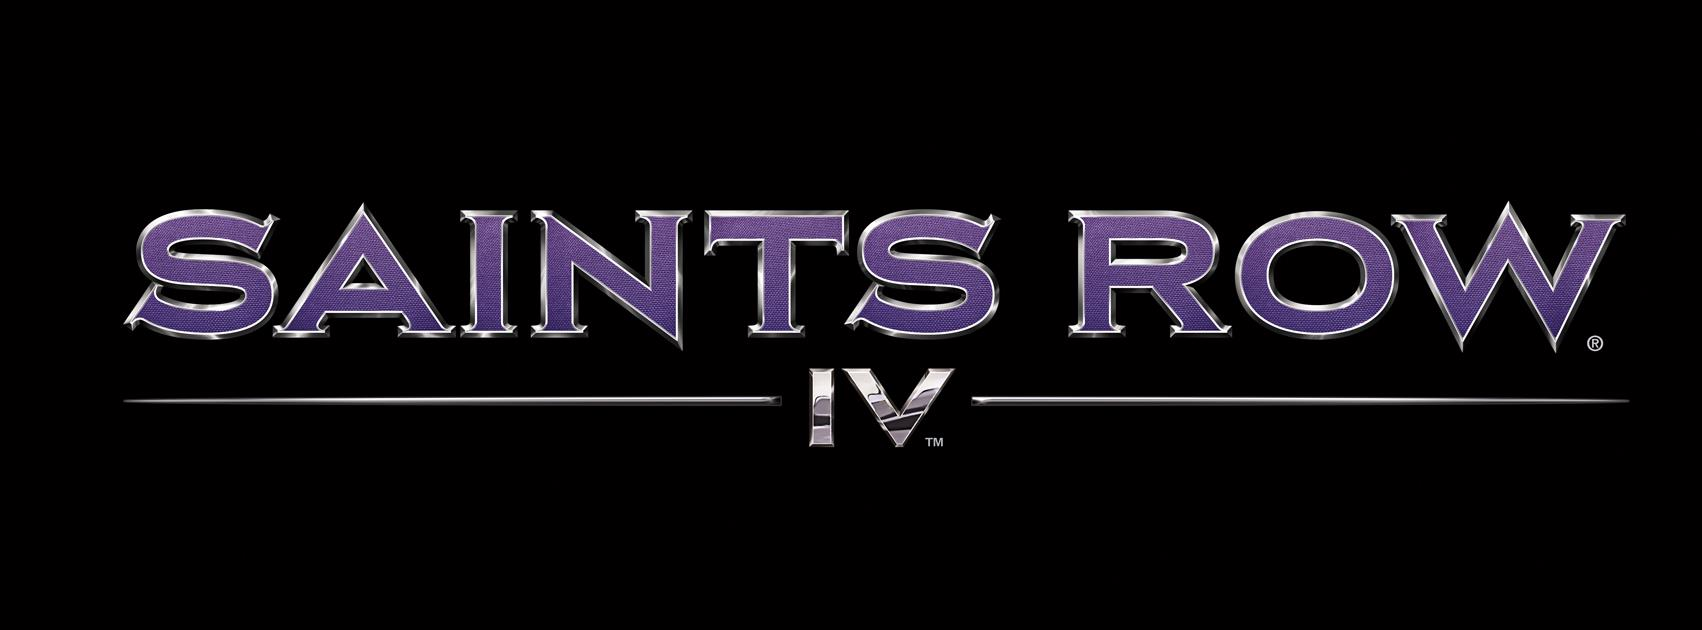 Saints Row 4 LogoSaints Row Logo